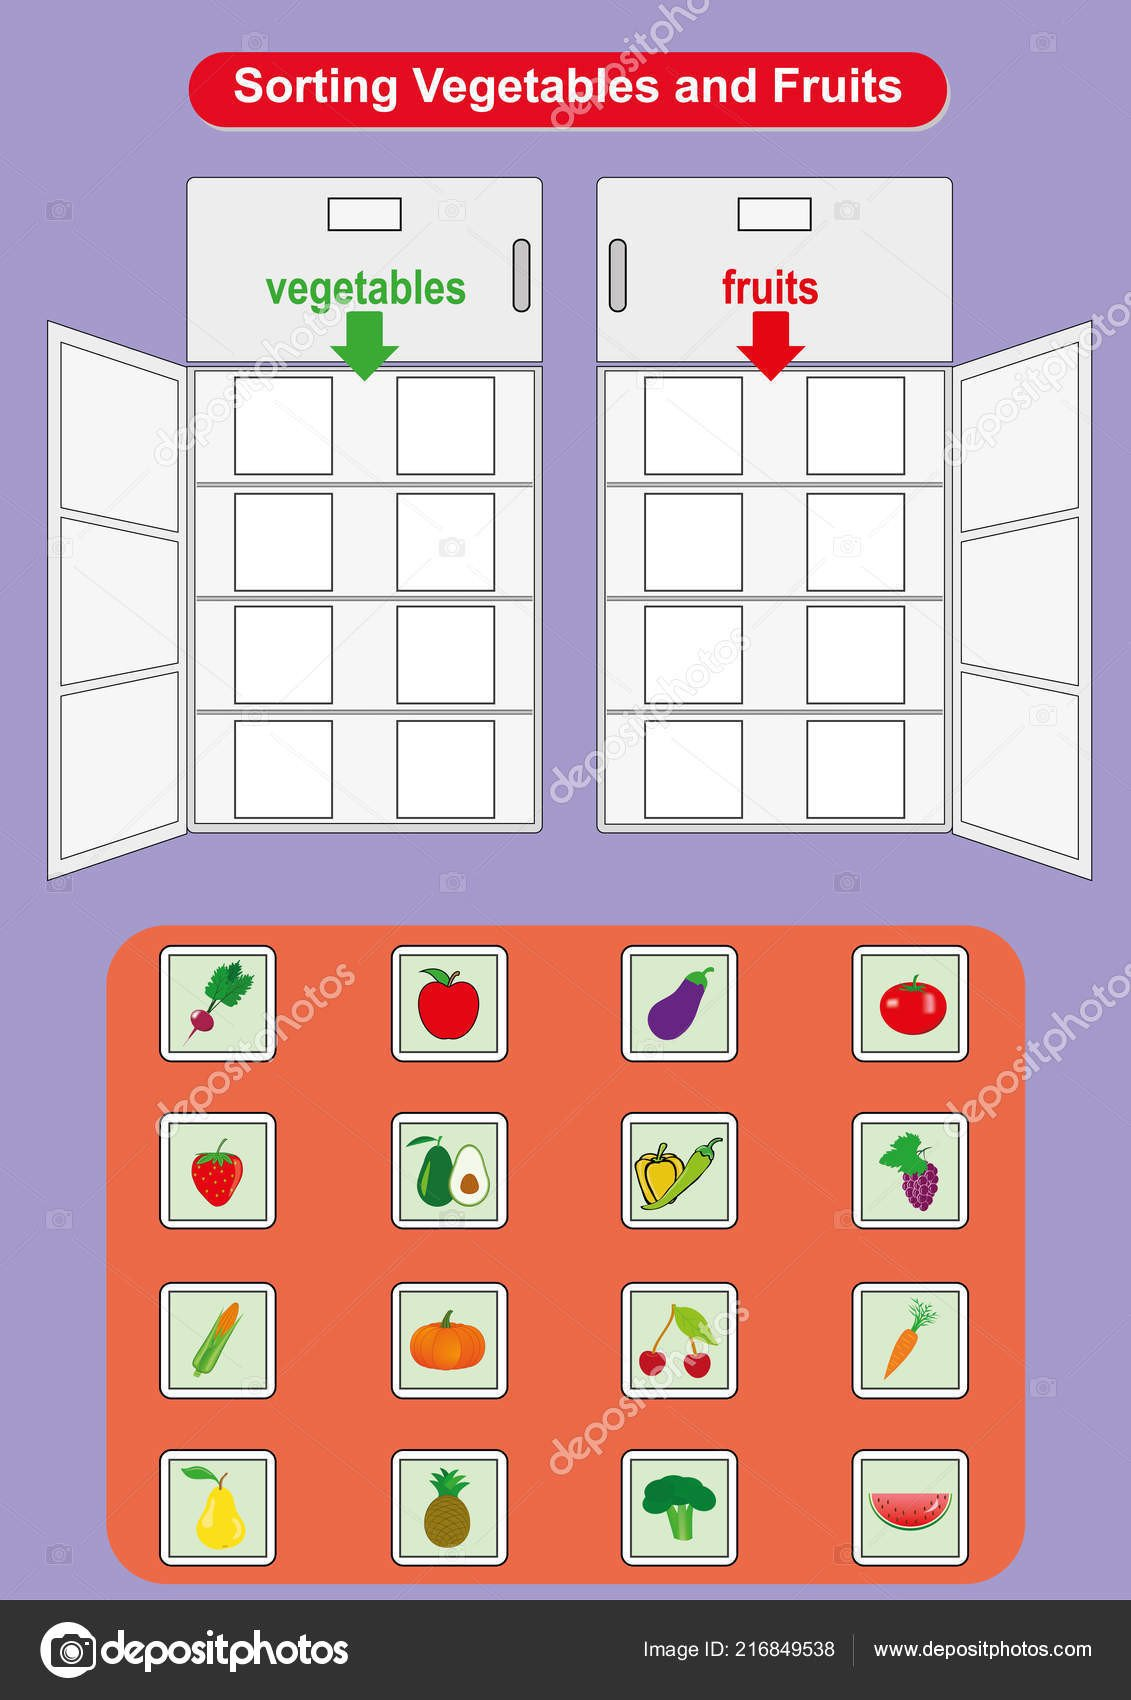 Fruits and Vegetables sorting Worksheet Fruit sorting Worksheet